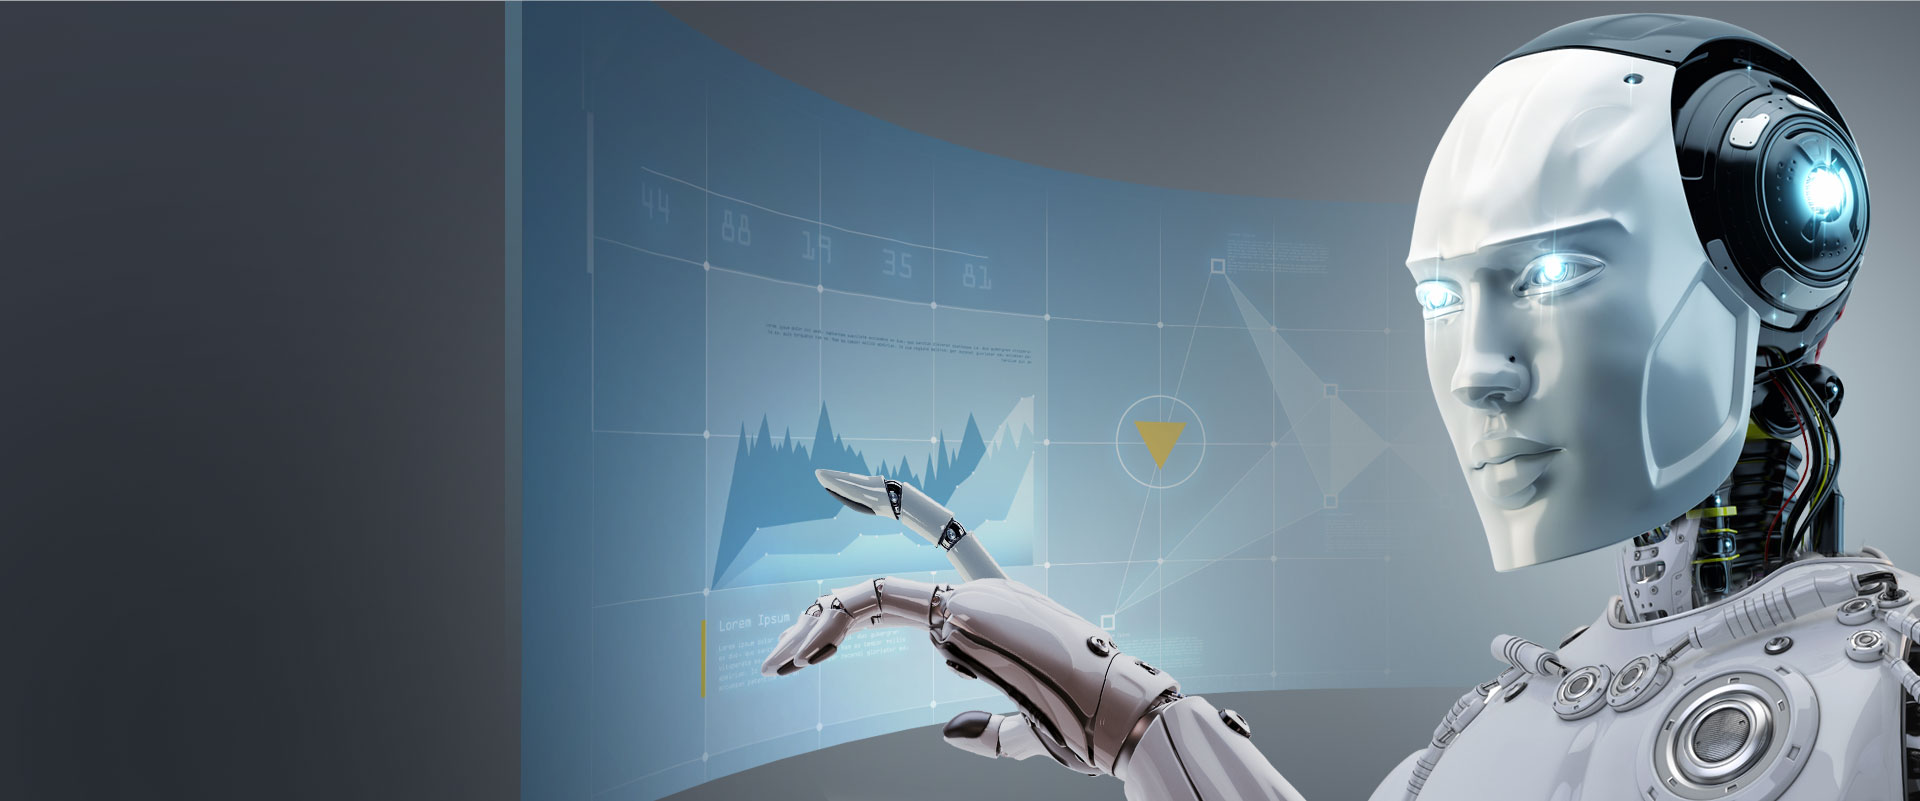 Cfd trading robot